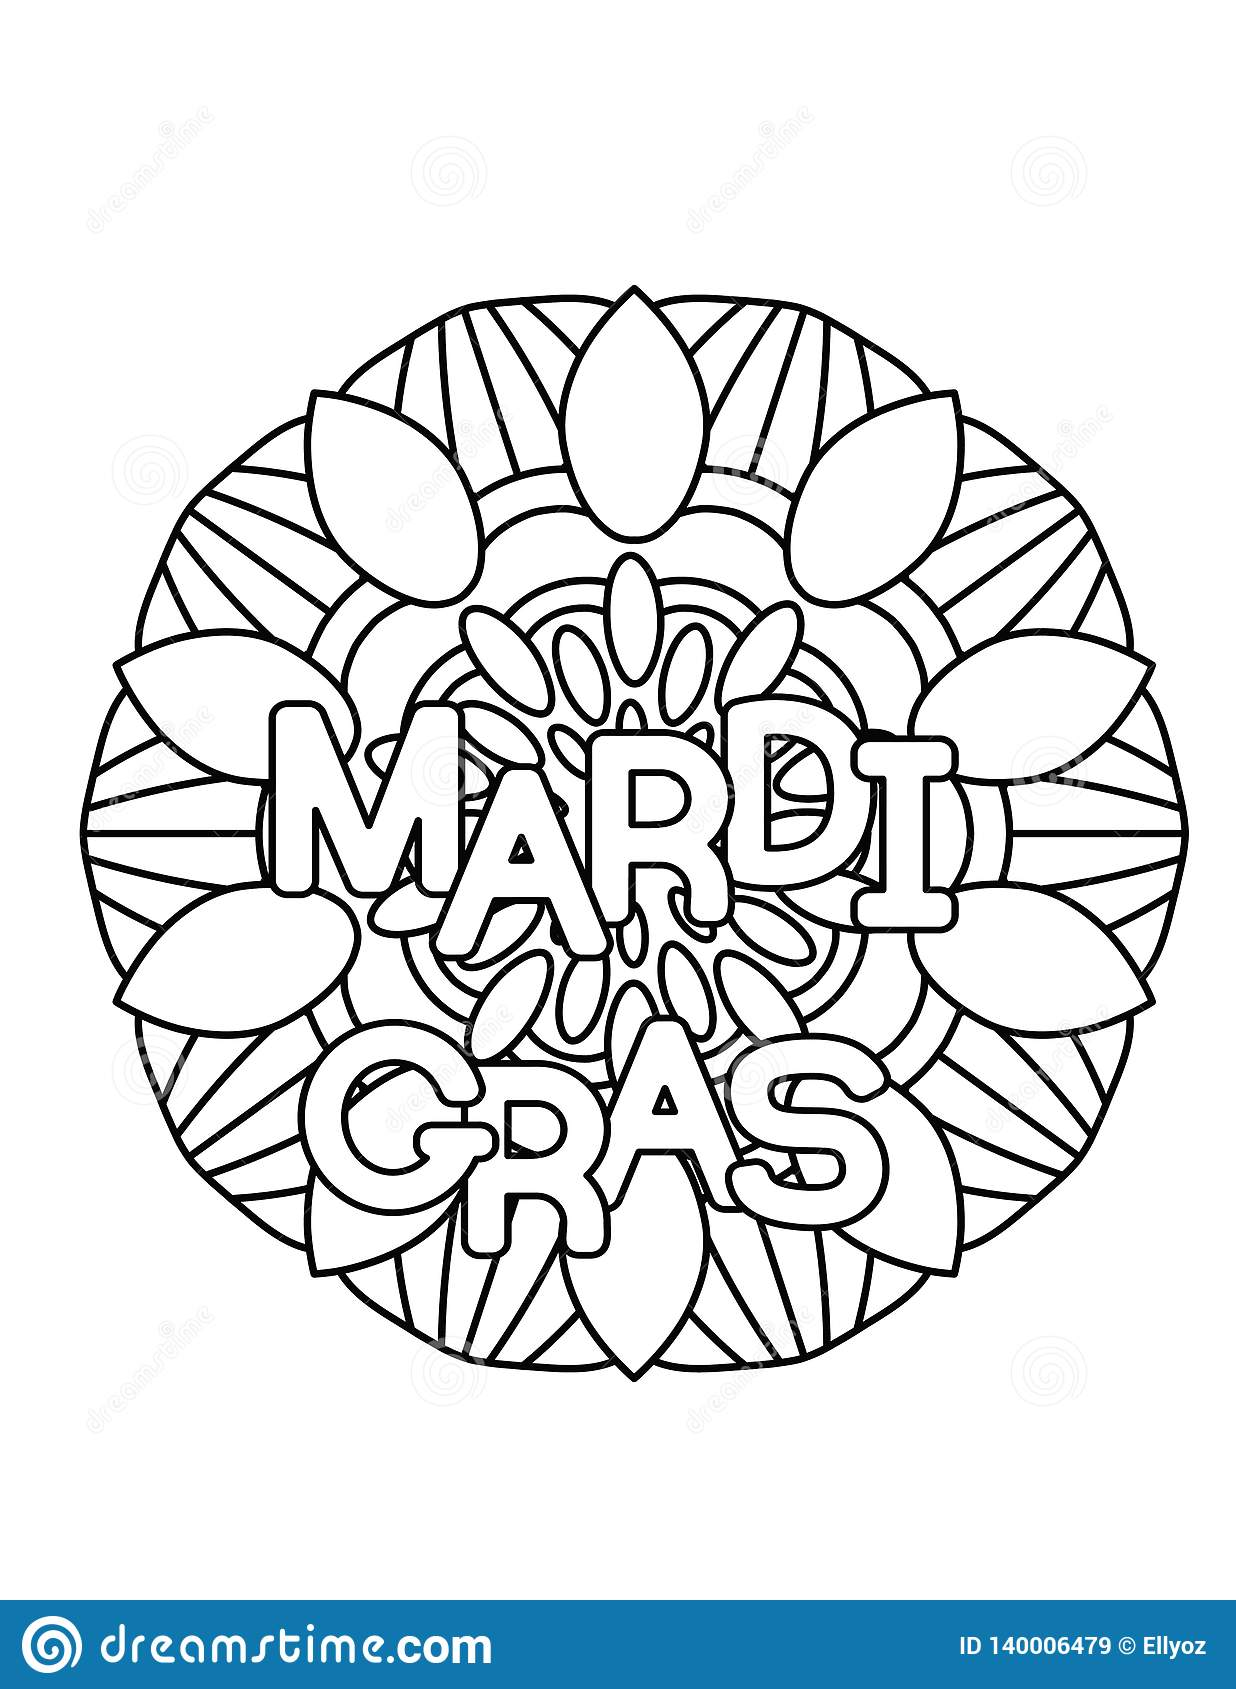 Printable Mardi Gras Coloring Pages For Kids | 1689x1236